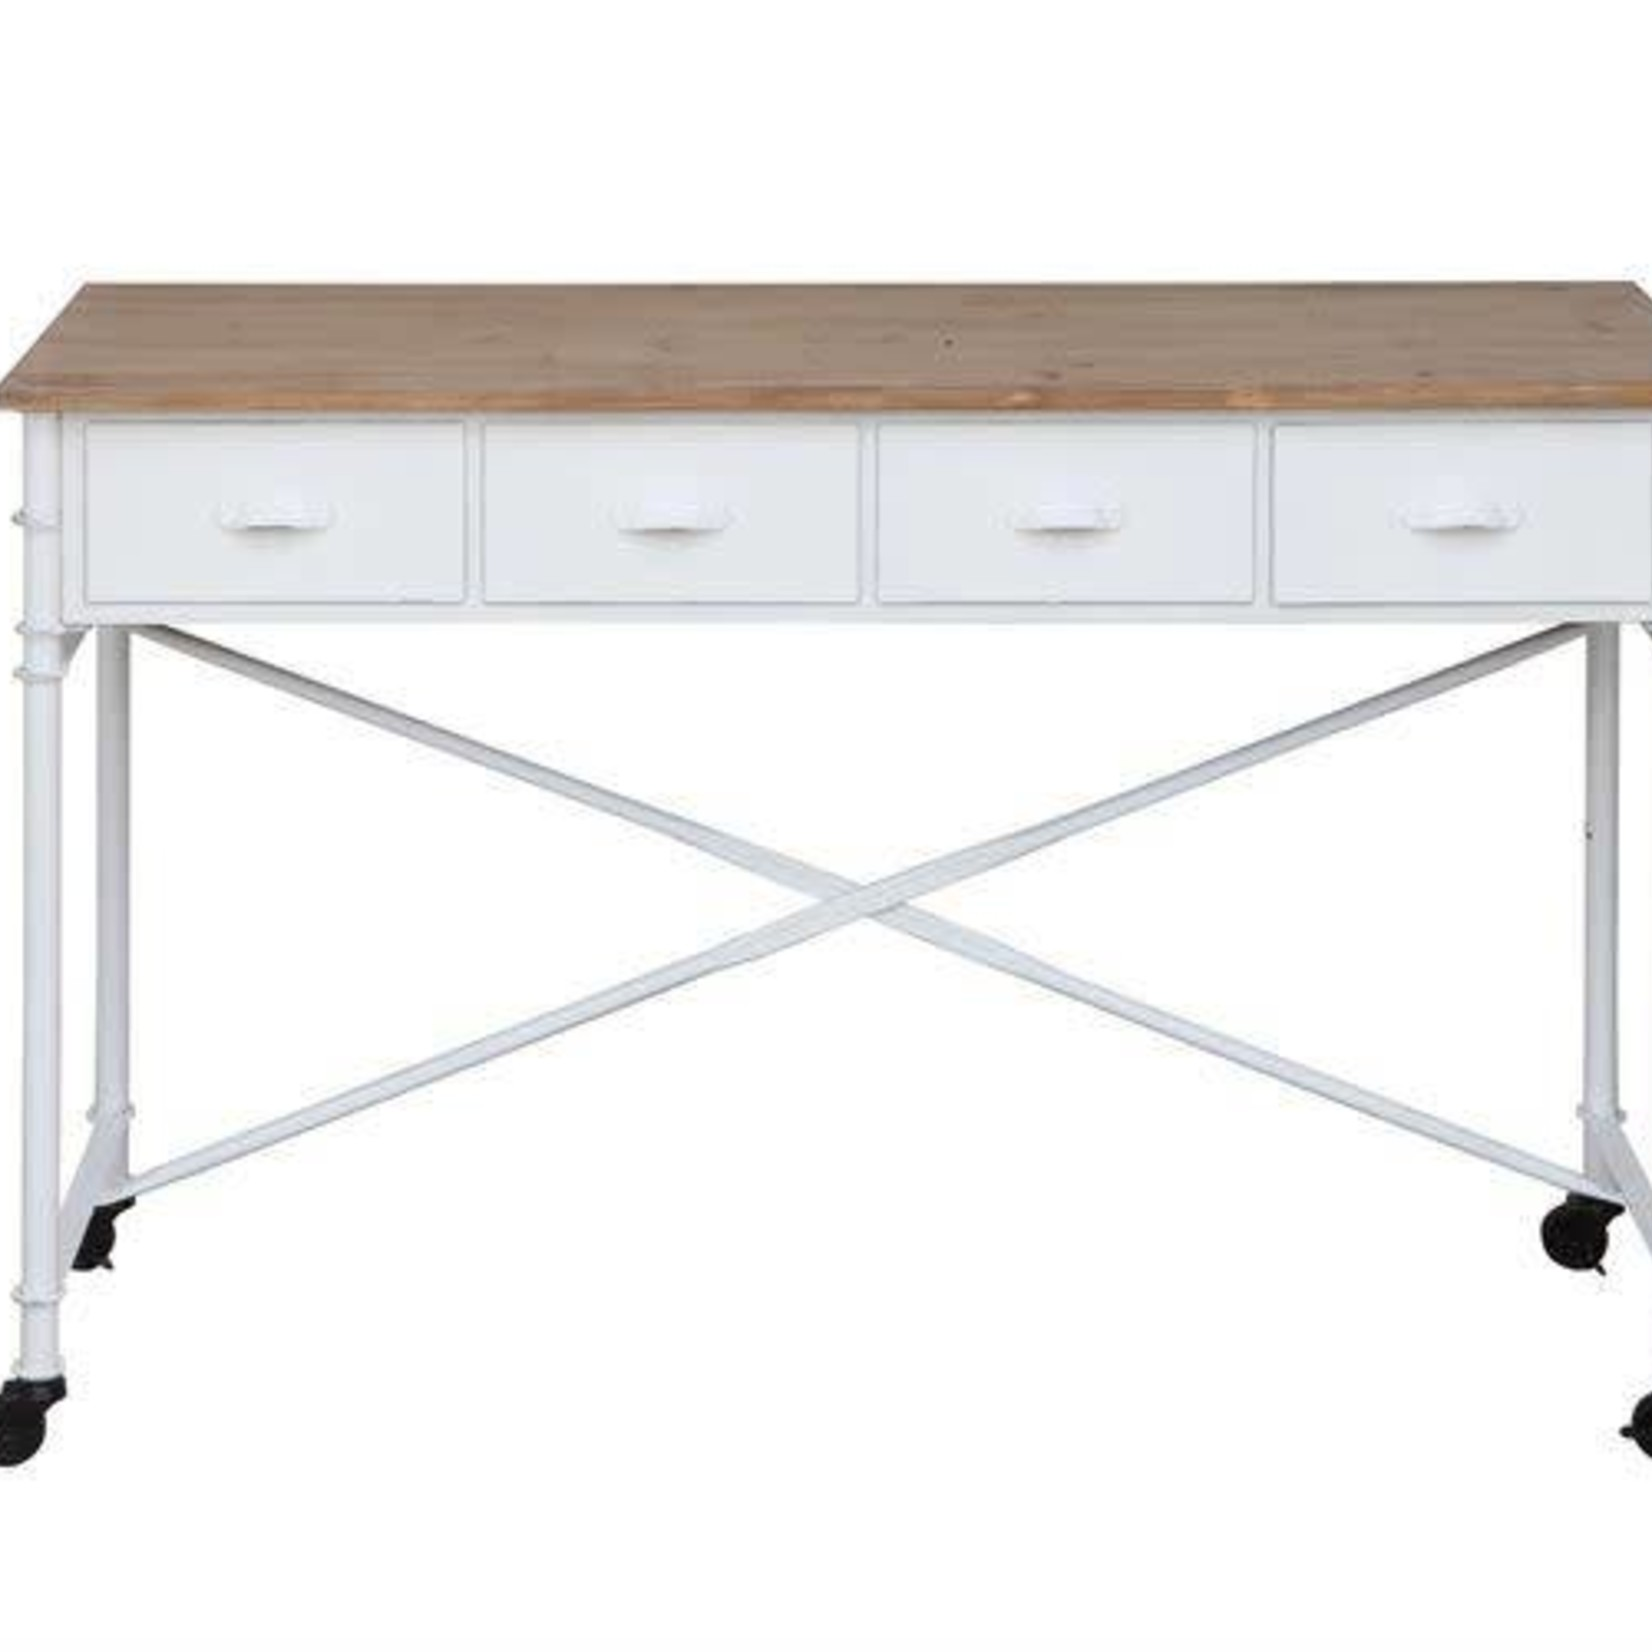 Table w/ 4 Drawers on Casters DF0275